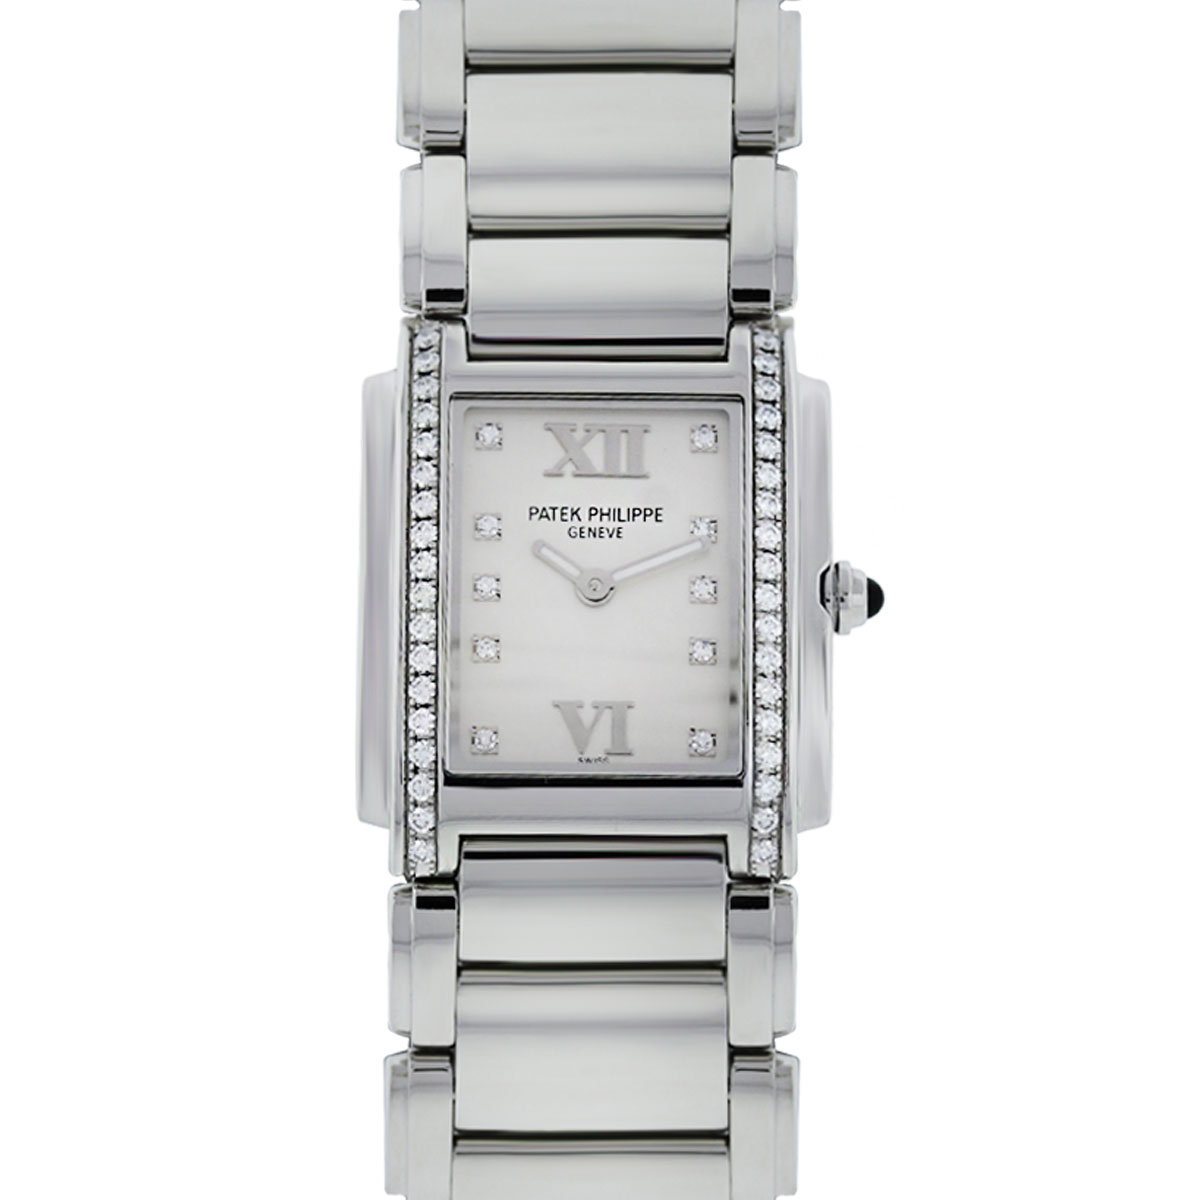 You are viewing this Patek Philippe Twenty 4 4910 Cream Dial Stainless Steel Watch!